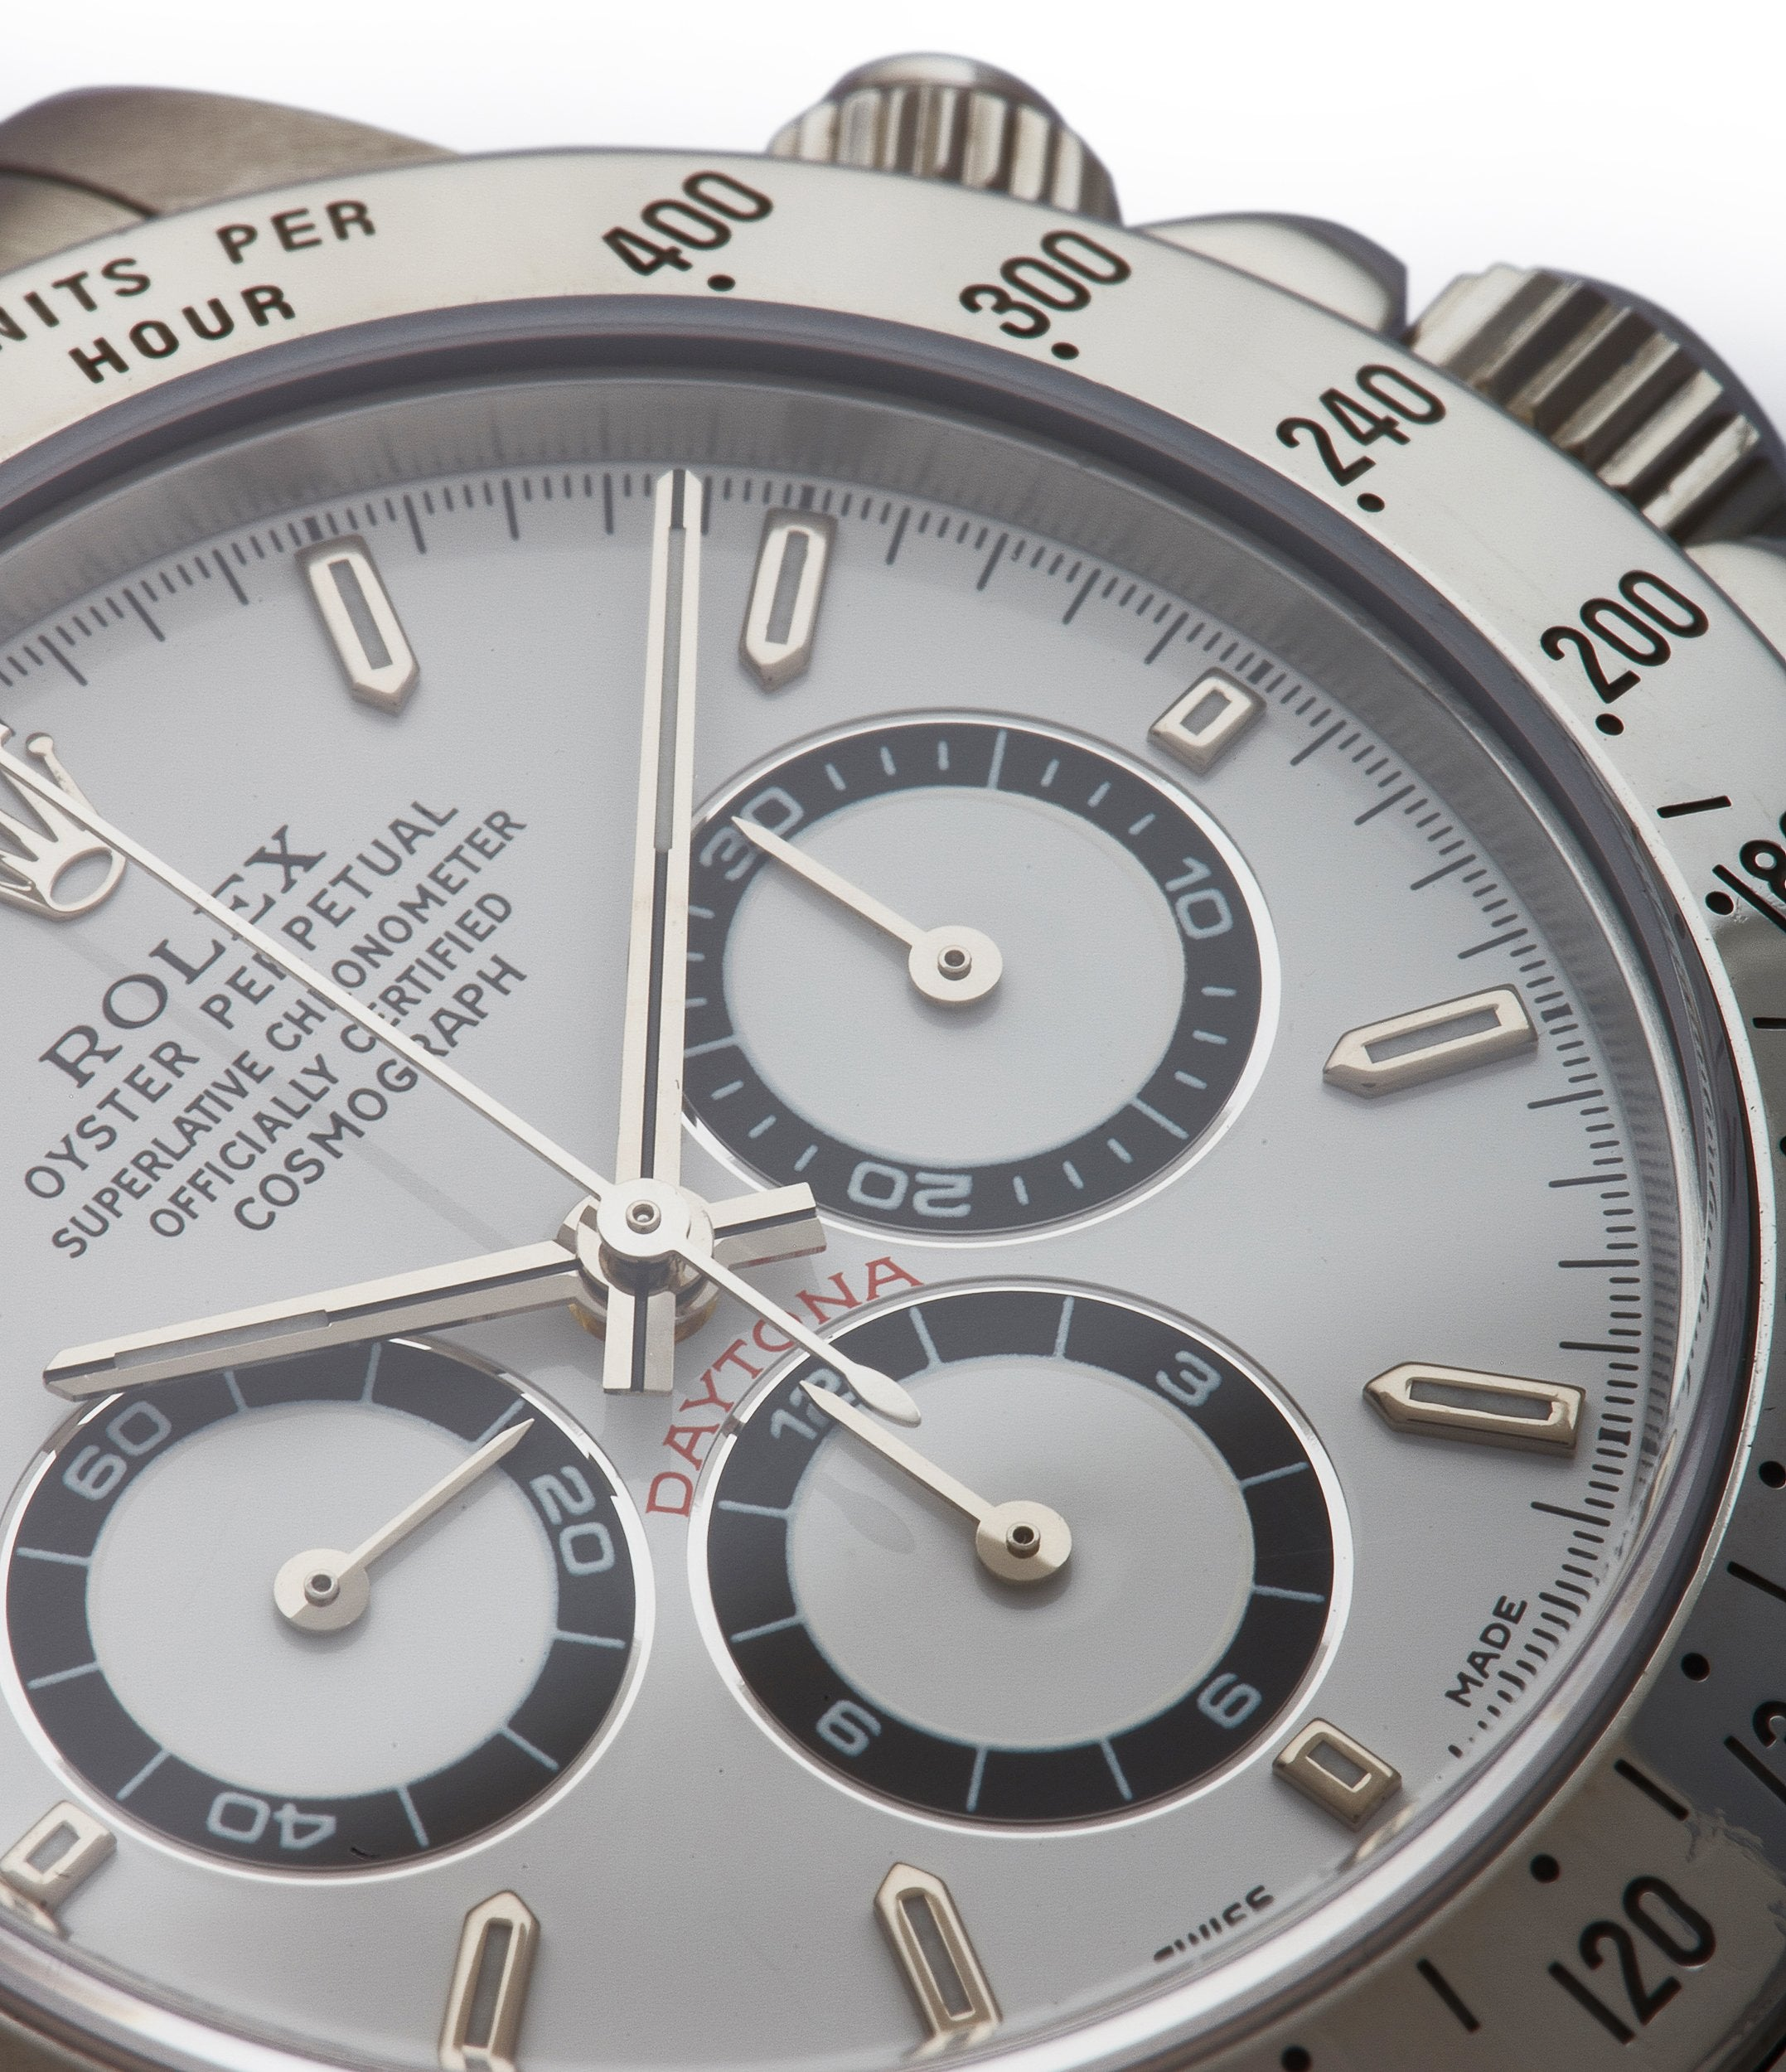 white dial Rolex Daytona 16520 Zenith steel vintage chronograph sports watch full set for sale online A Collected Man London specialist rare watches